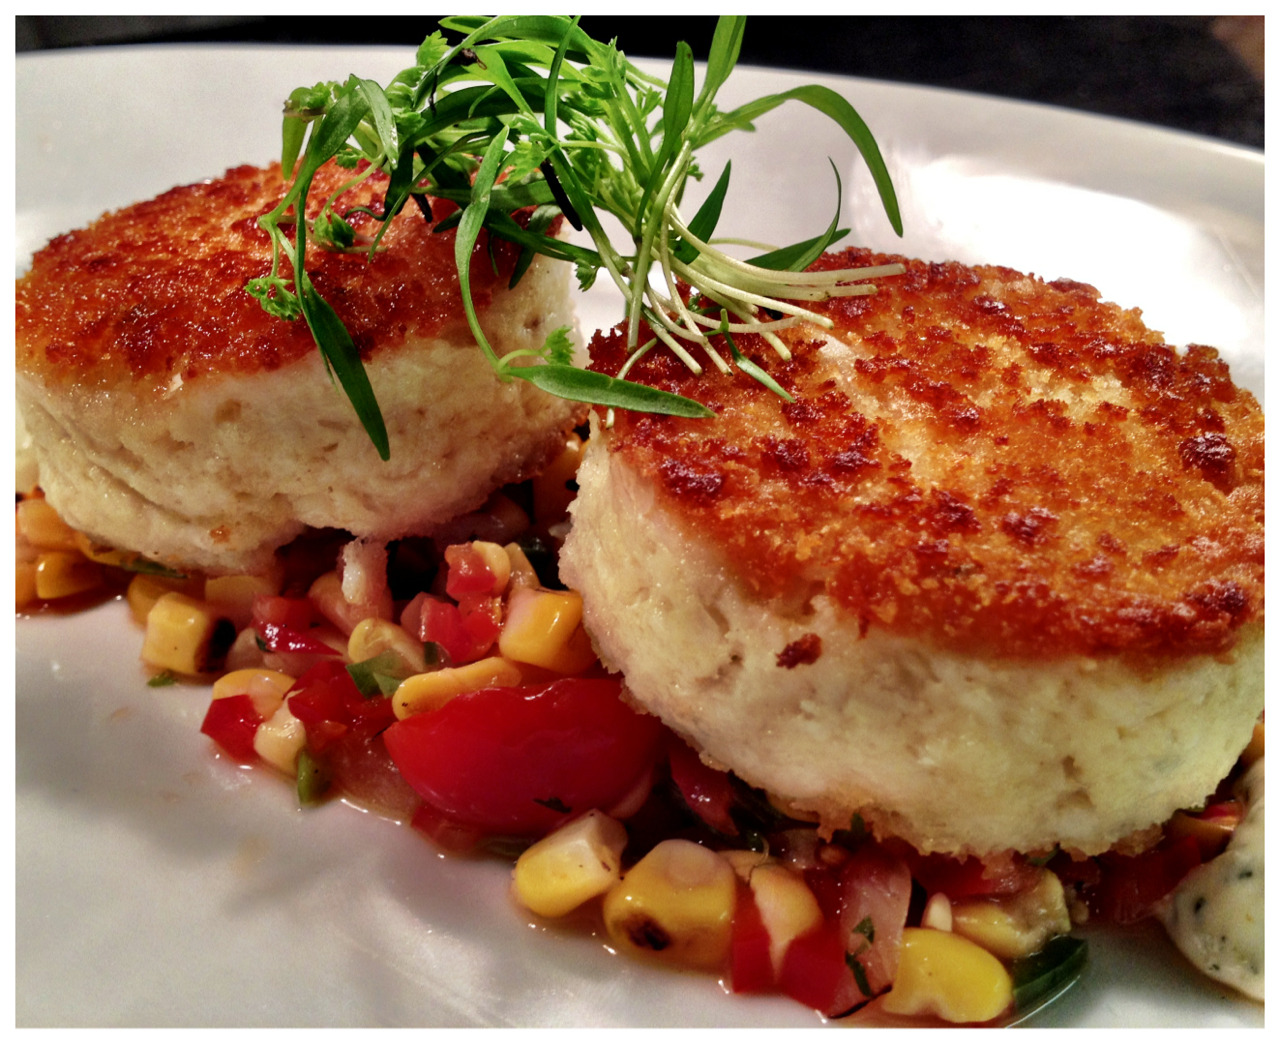 Who loves crab cakes? Here's our version served with grilled sweet corn, tomato salsa, cilantro for $15 (lunch menu).